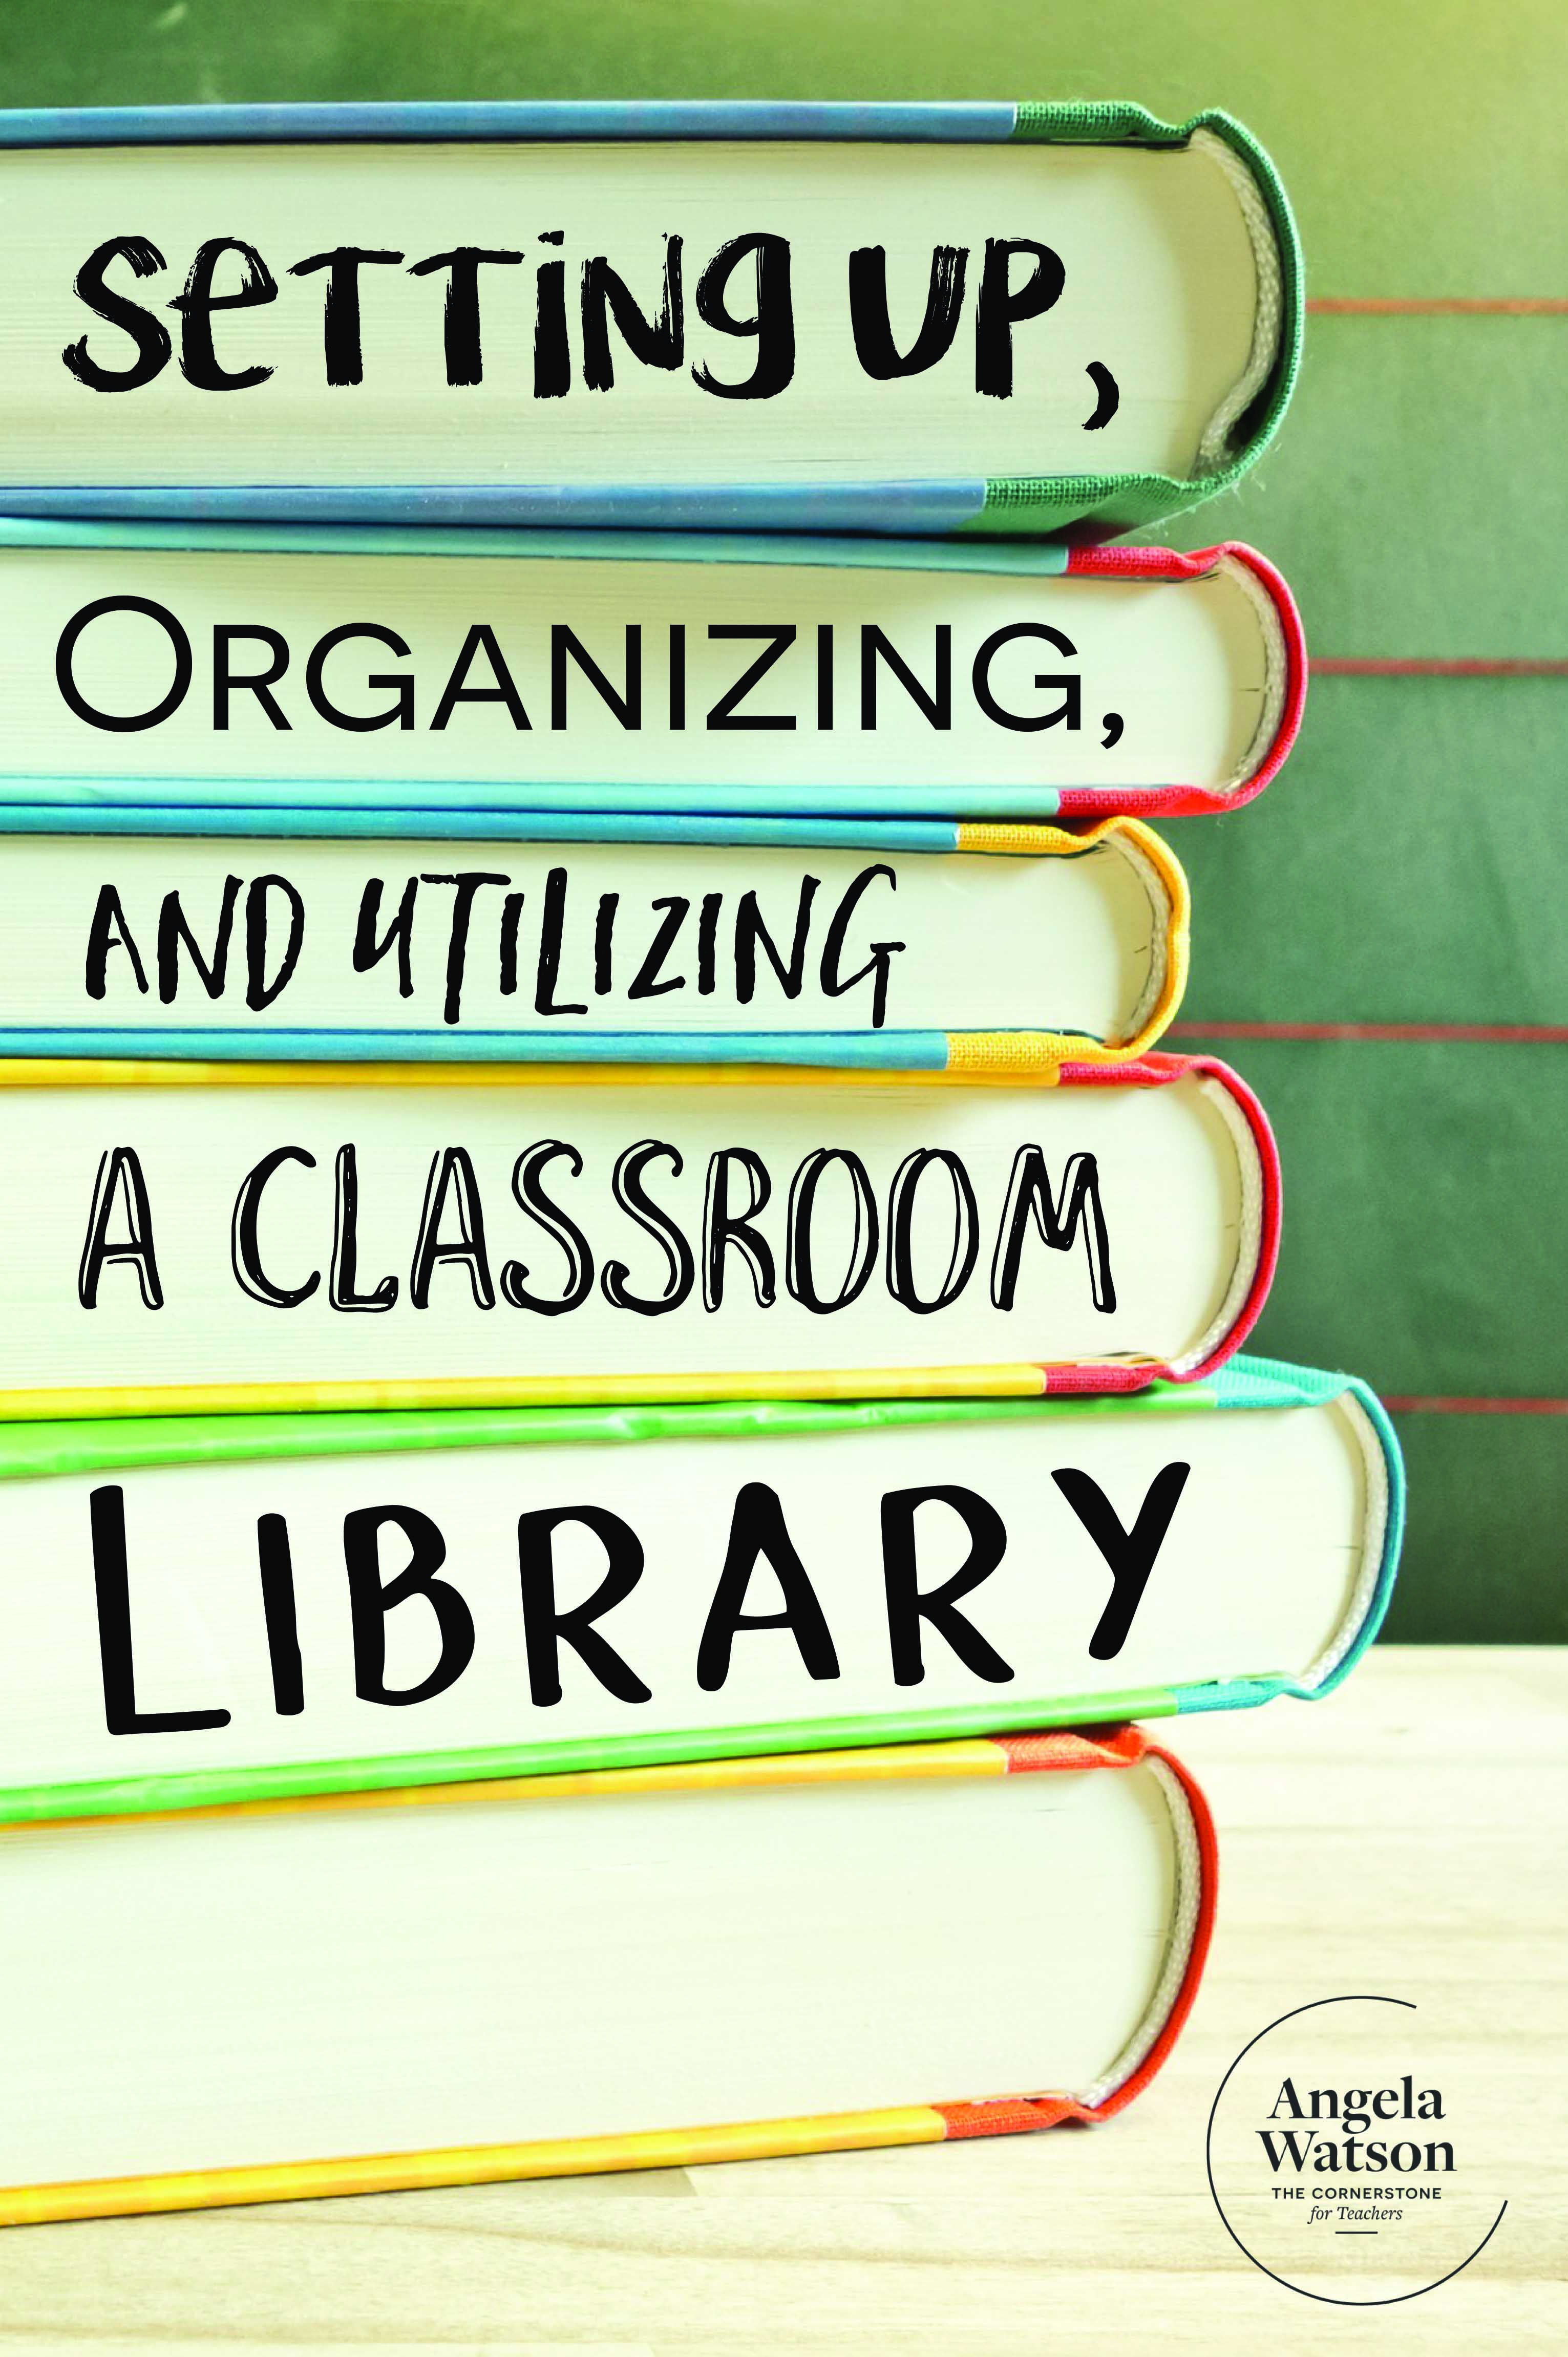 Setting Up, Organizing, and Utilizing a Classroom Library